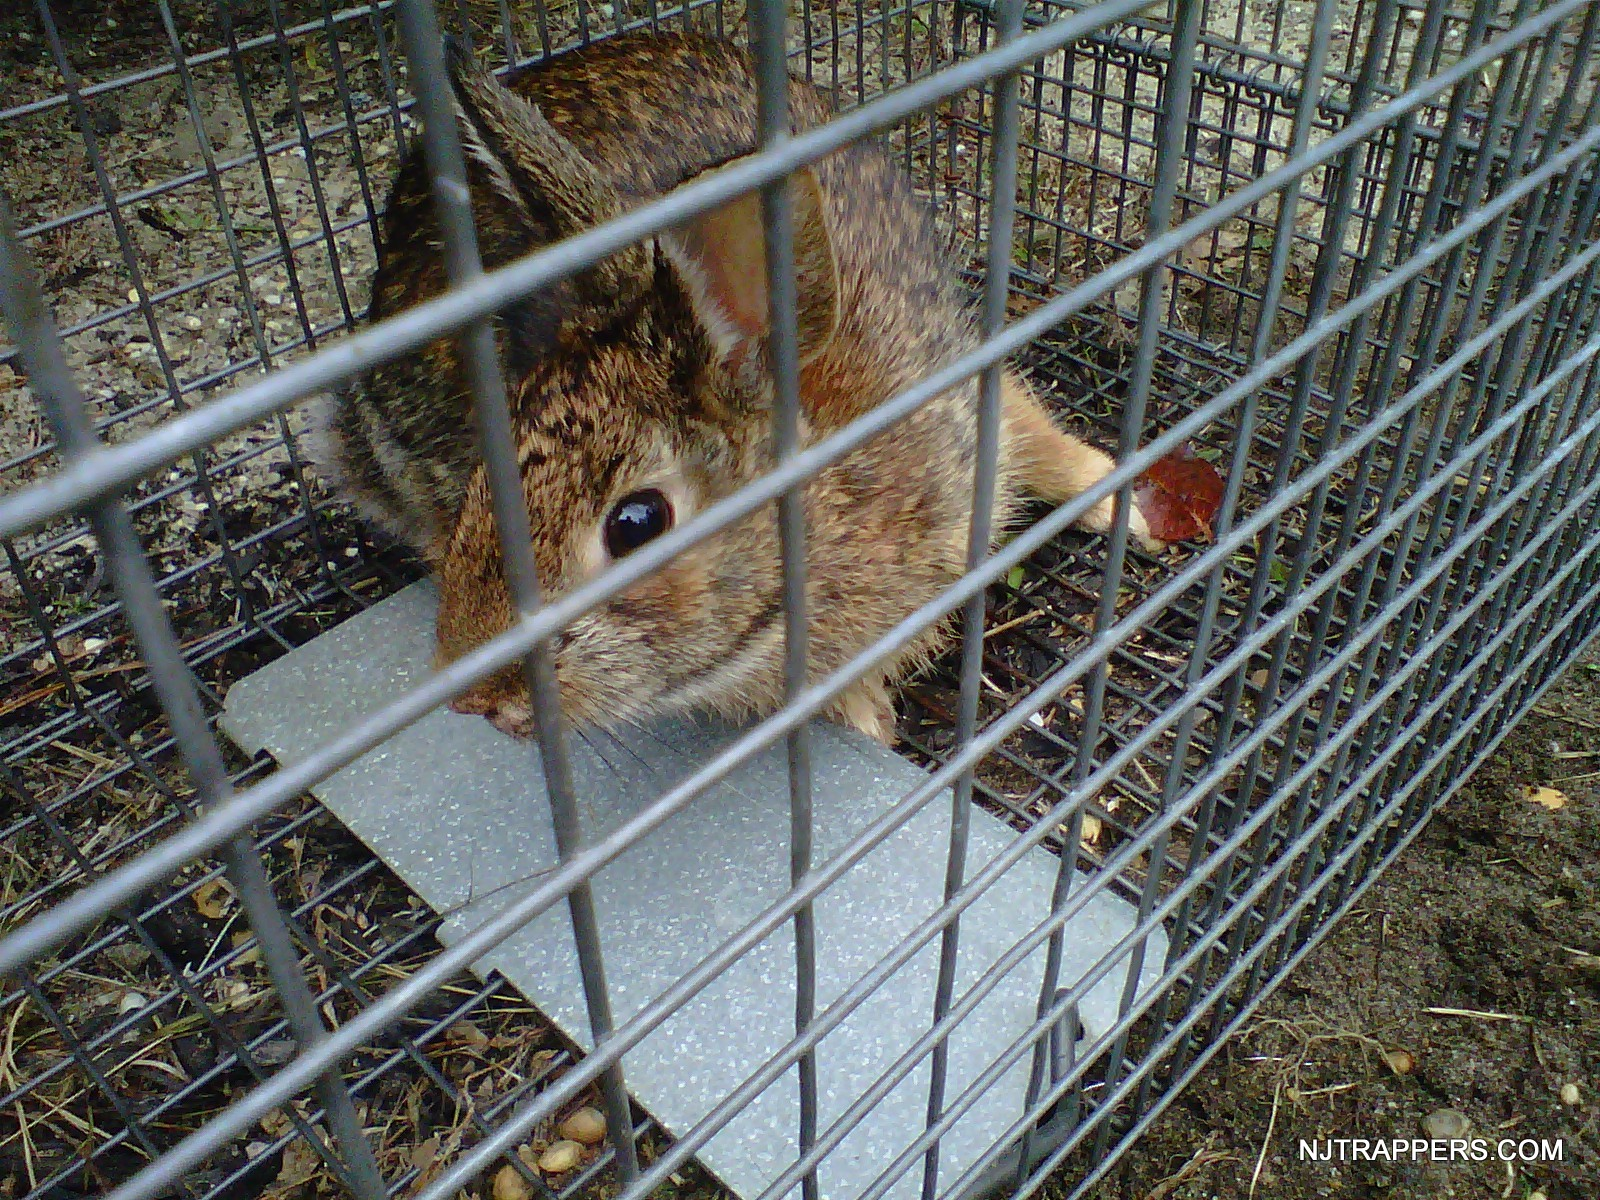 Nj Trappers 187 Animal Removal